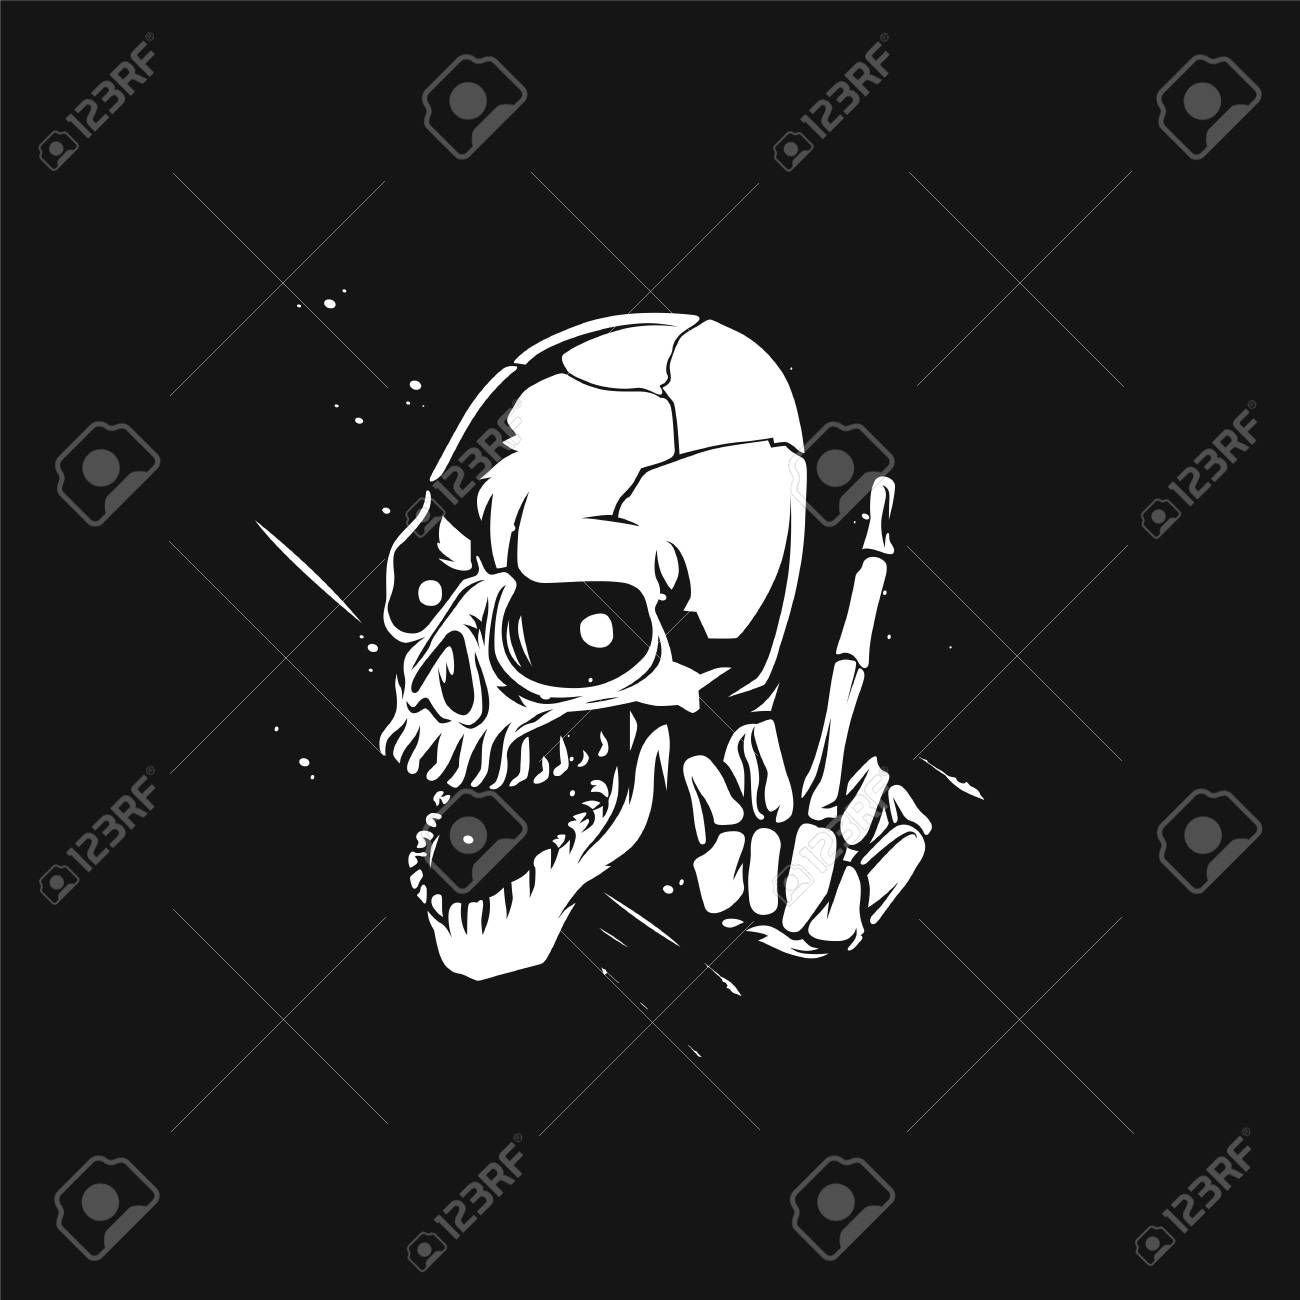 Sketch Of The Skull With Middle Finger Vector Illustration Design